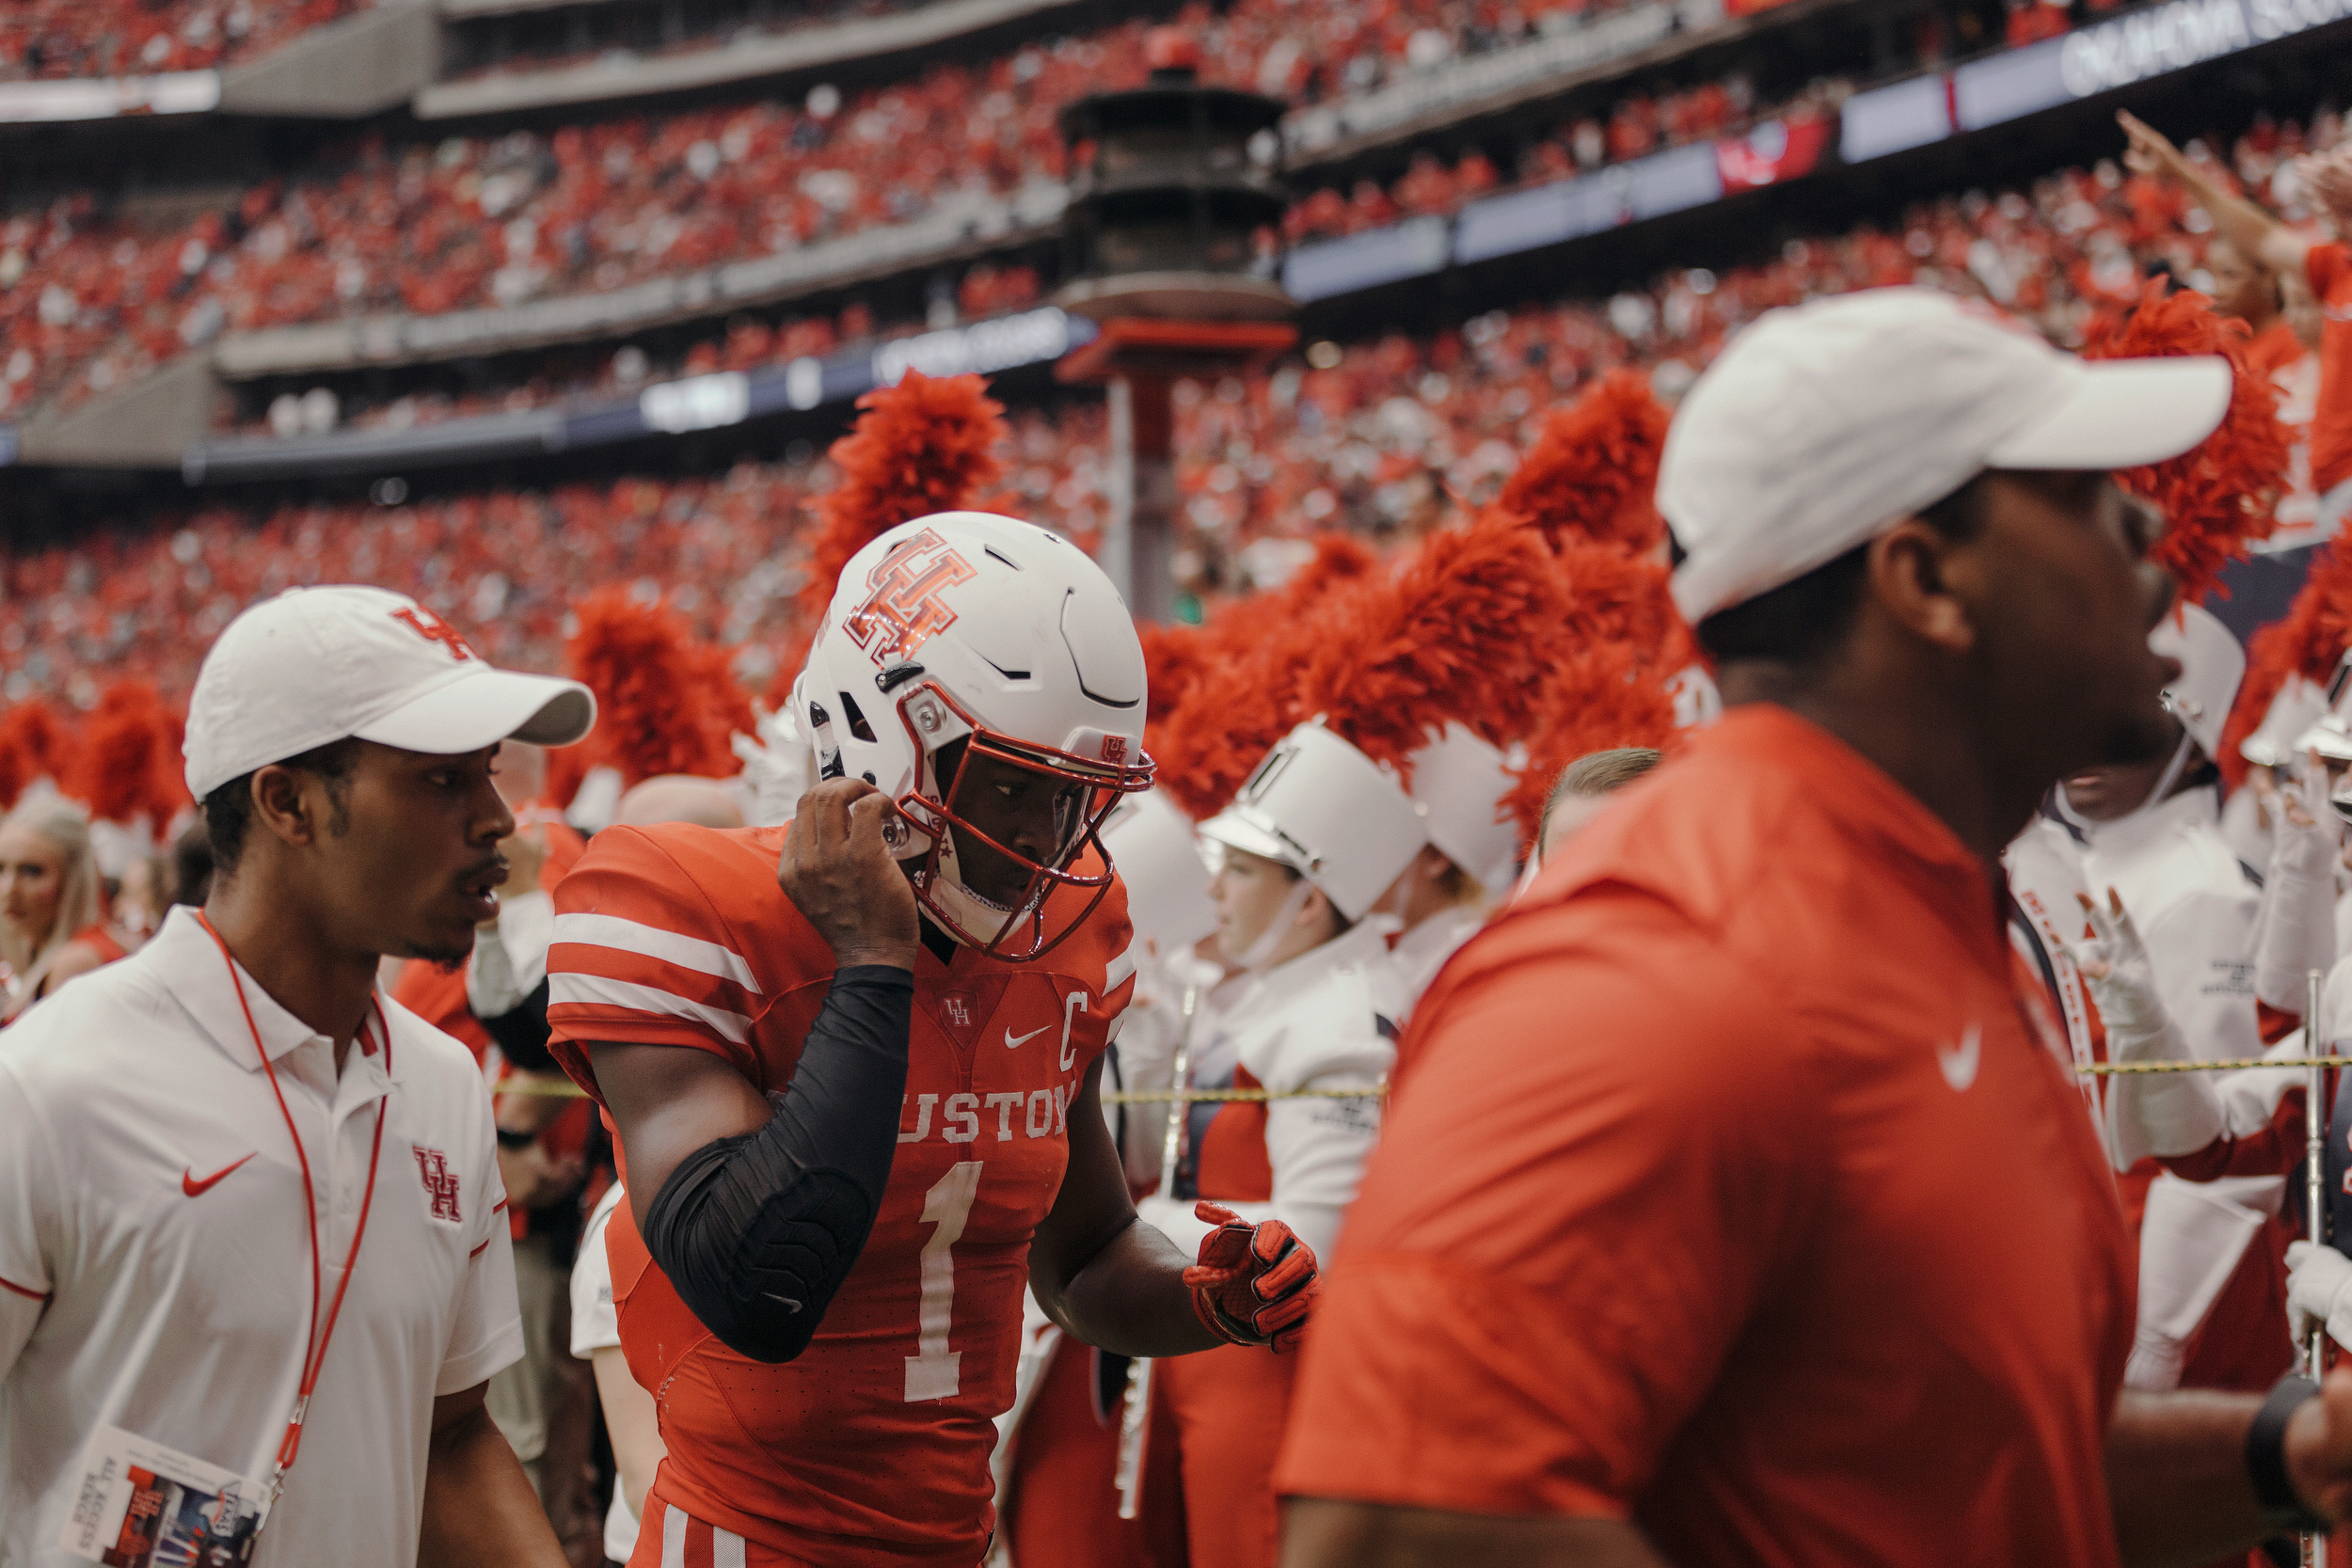 University of Houston quarterback, Greg Ward Jr., walks back to the locker room after the first half. Todd Spoth for The New York Times.